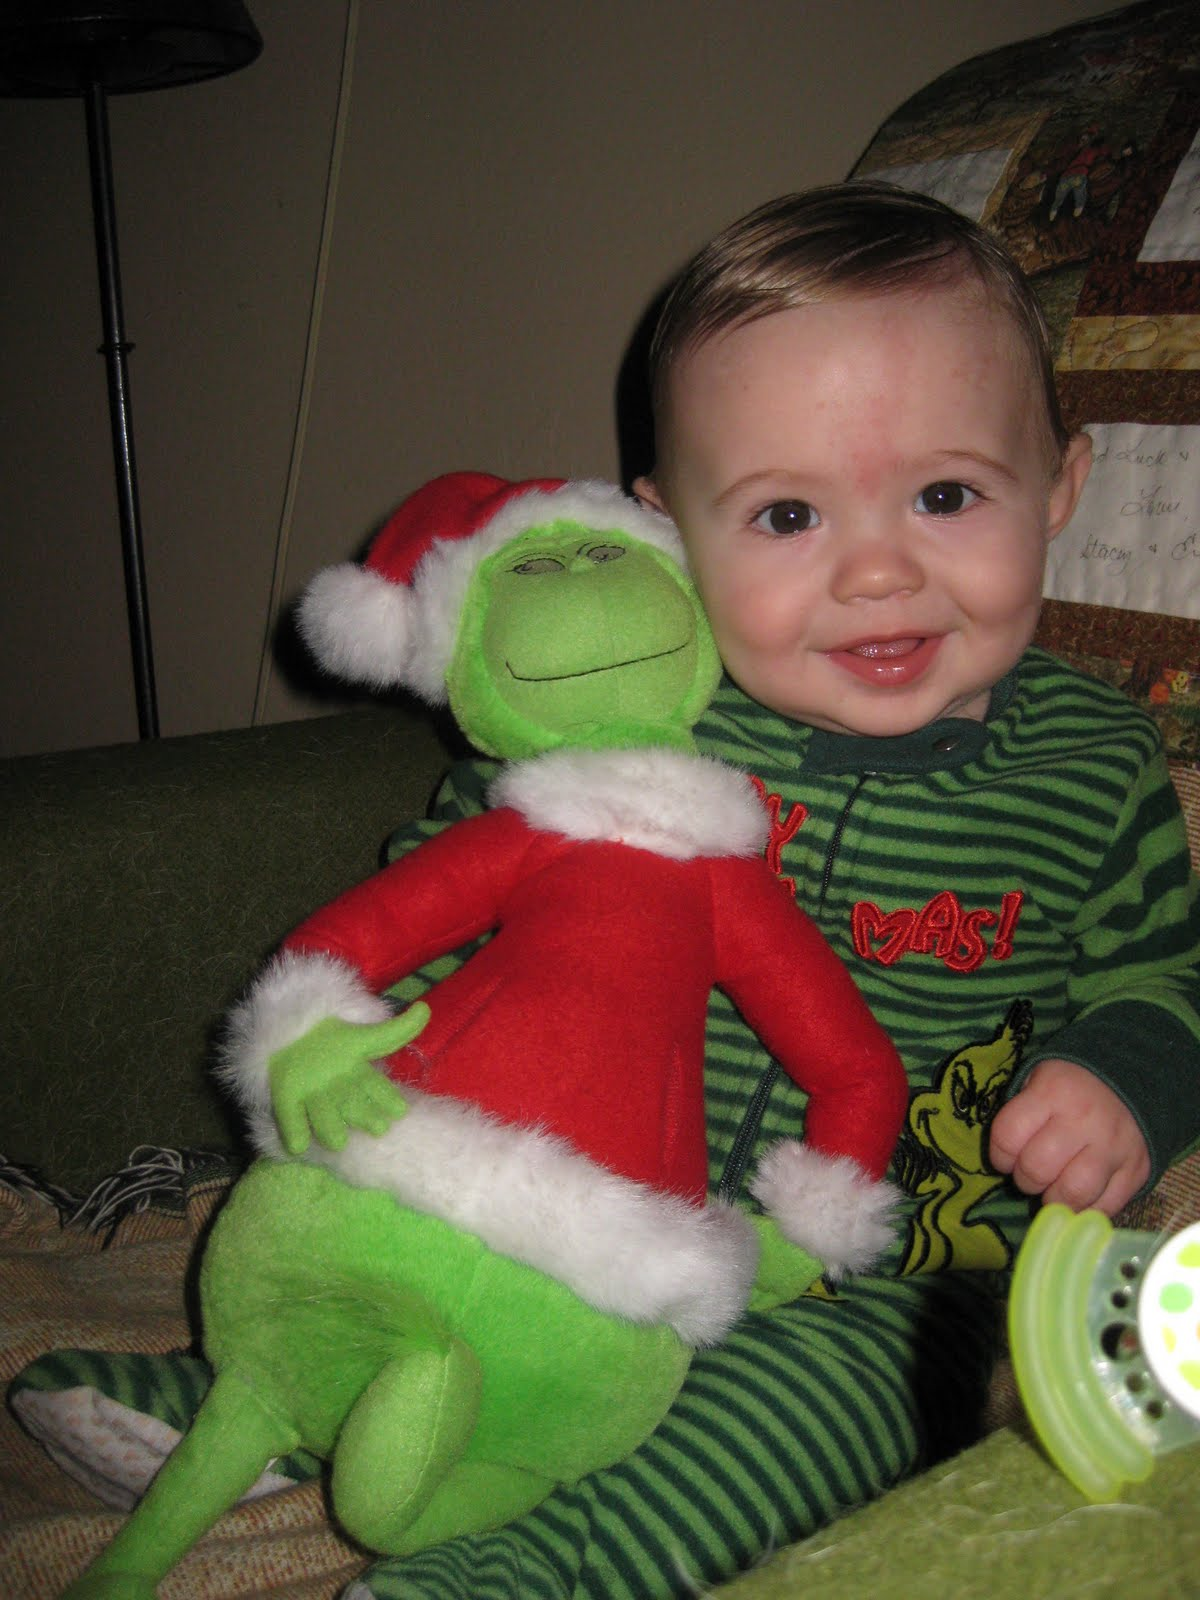 Baby Grinch Gif Has grinch pajamas for the